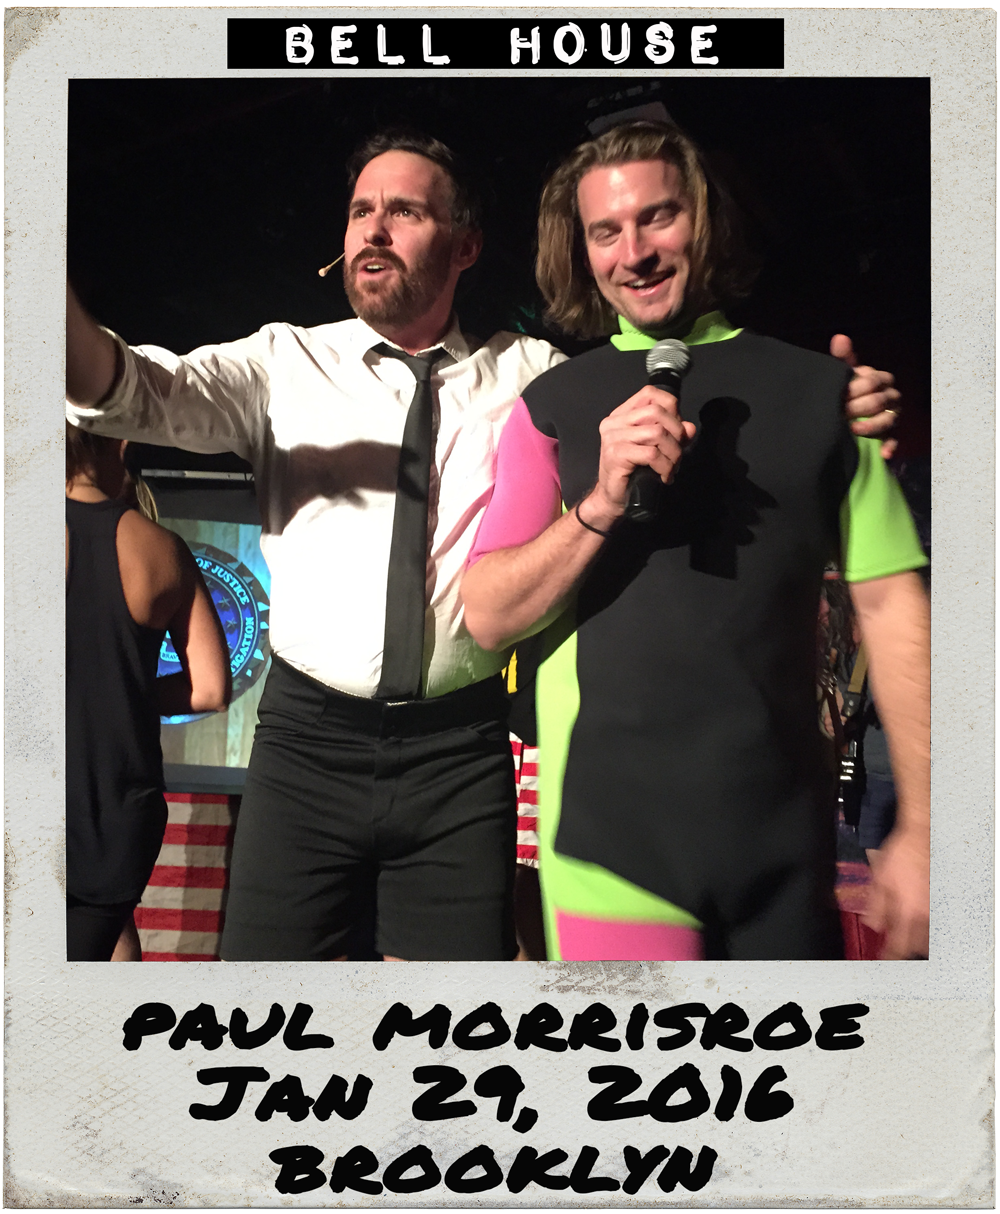 01_29_16_Paul-Morrisroe_Brooklyn.png